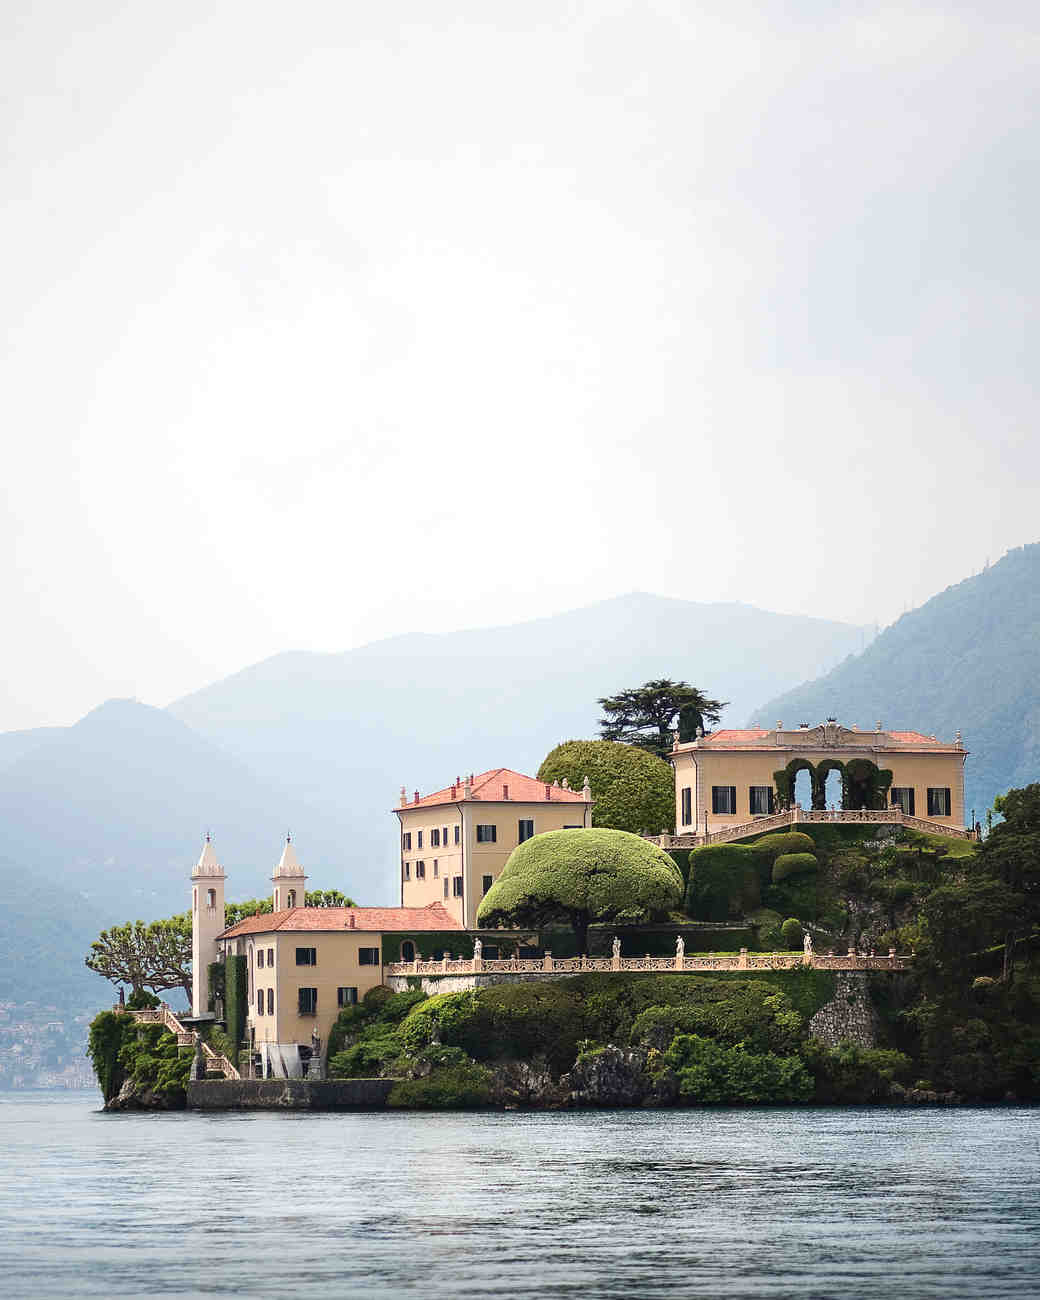 filming-locations-wedding-venues-villa-del-balbianello-italy-star-wars-mws2313-0215.jpg